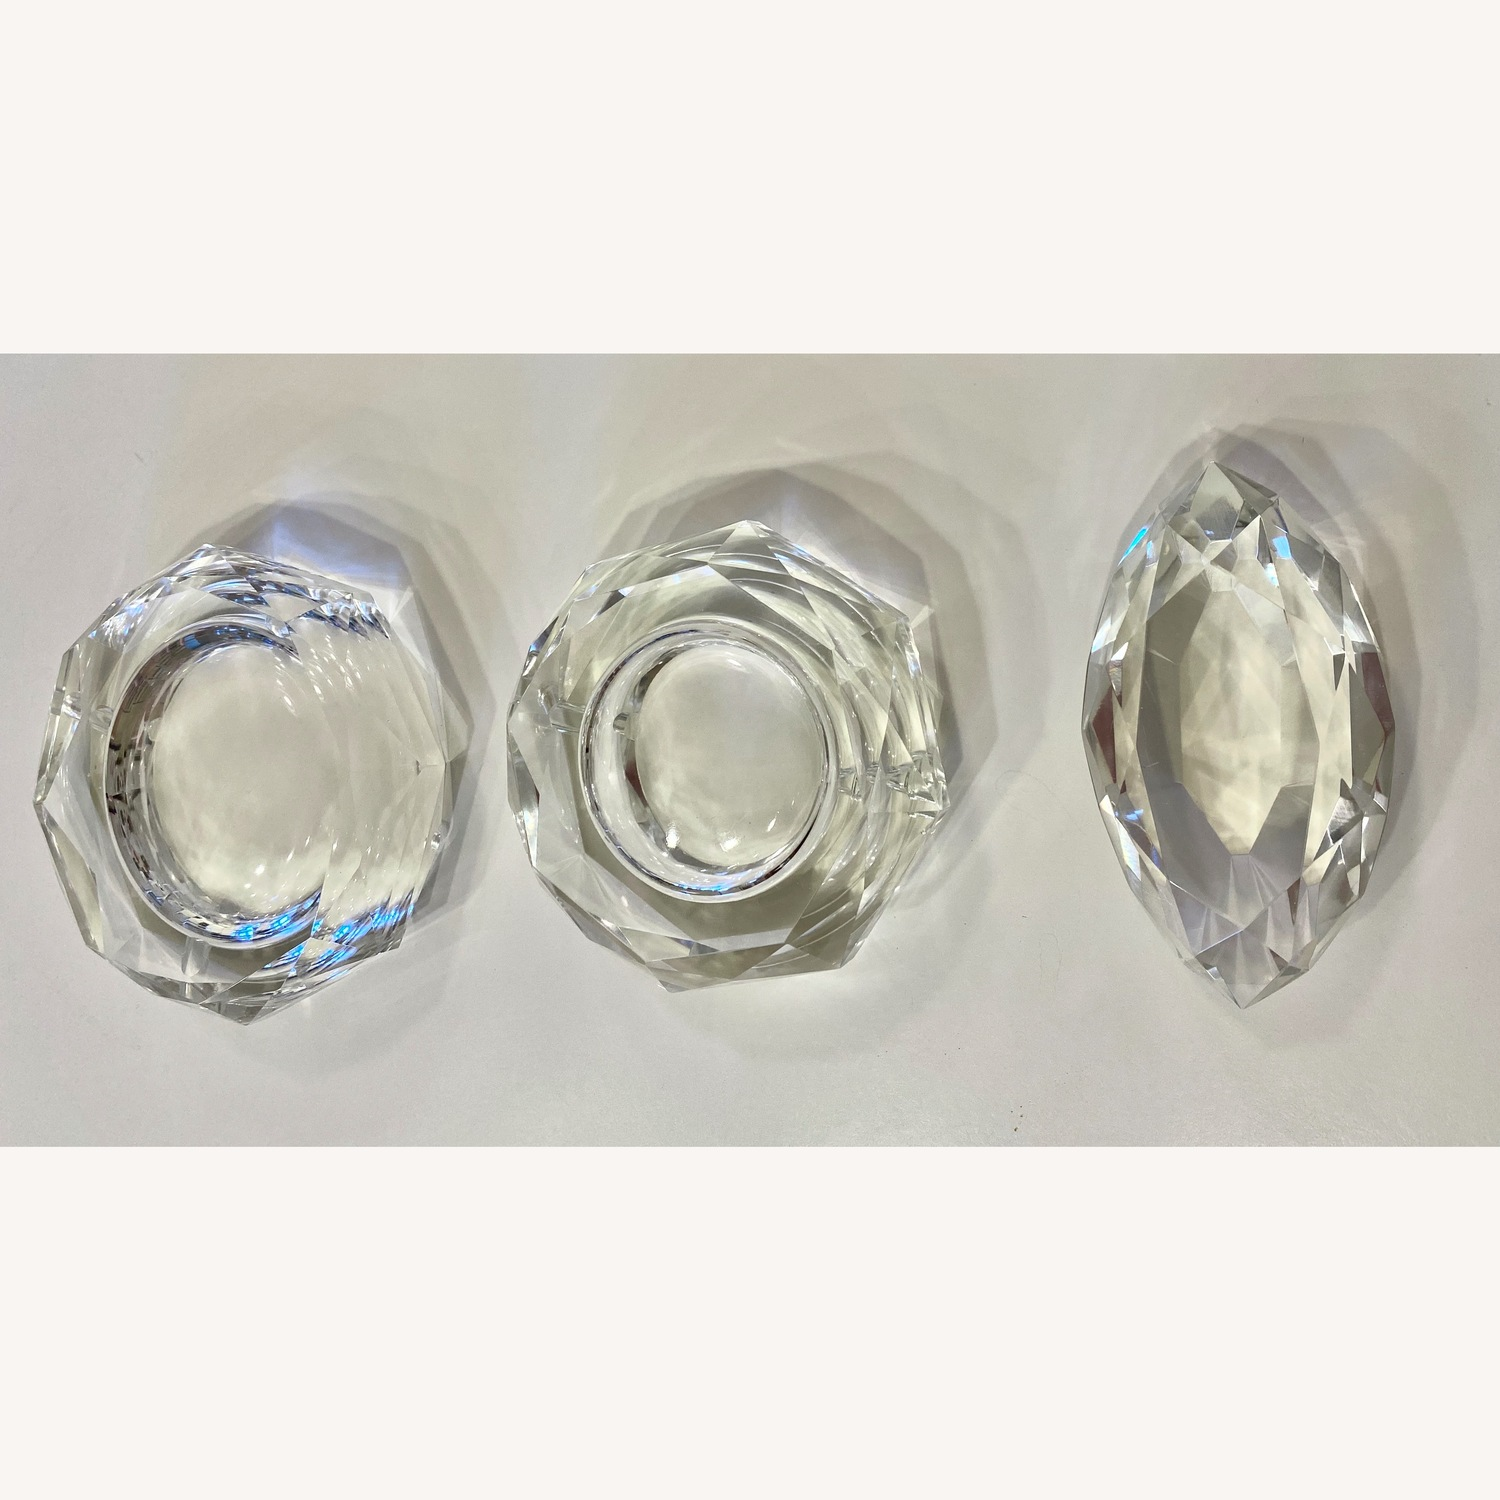 3 Heavy Weight Prism Cut Glass Ash Trays Paper Weight